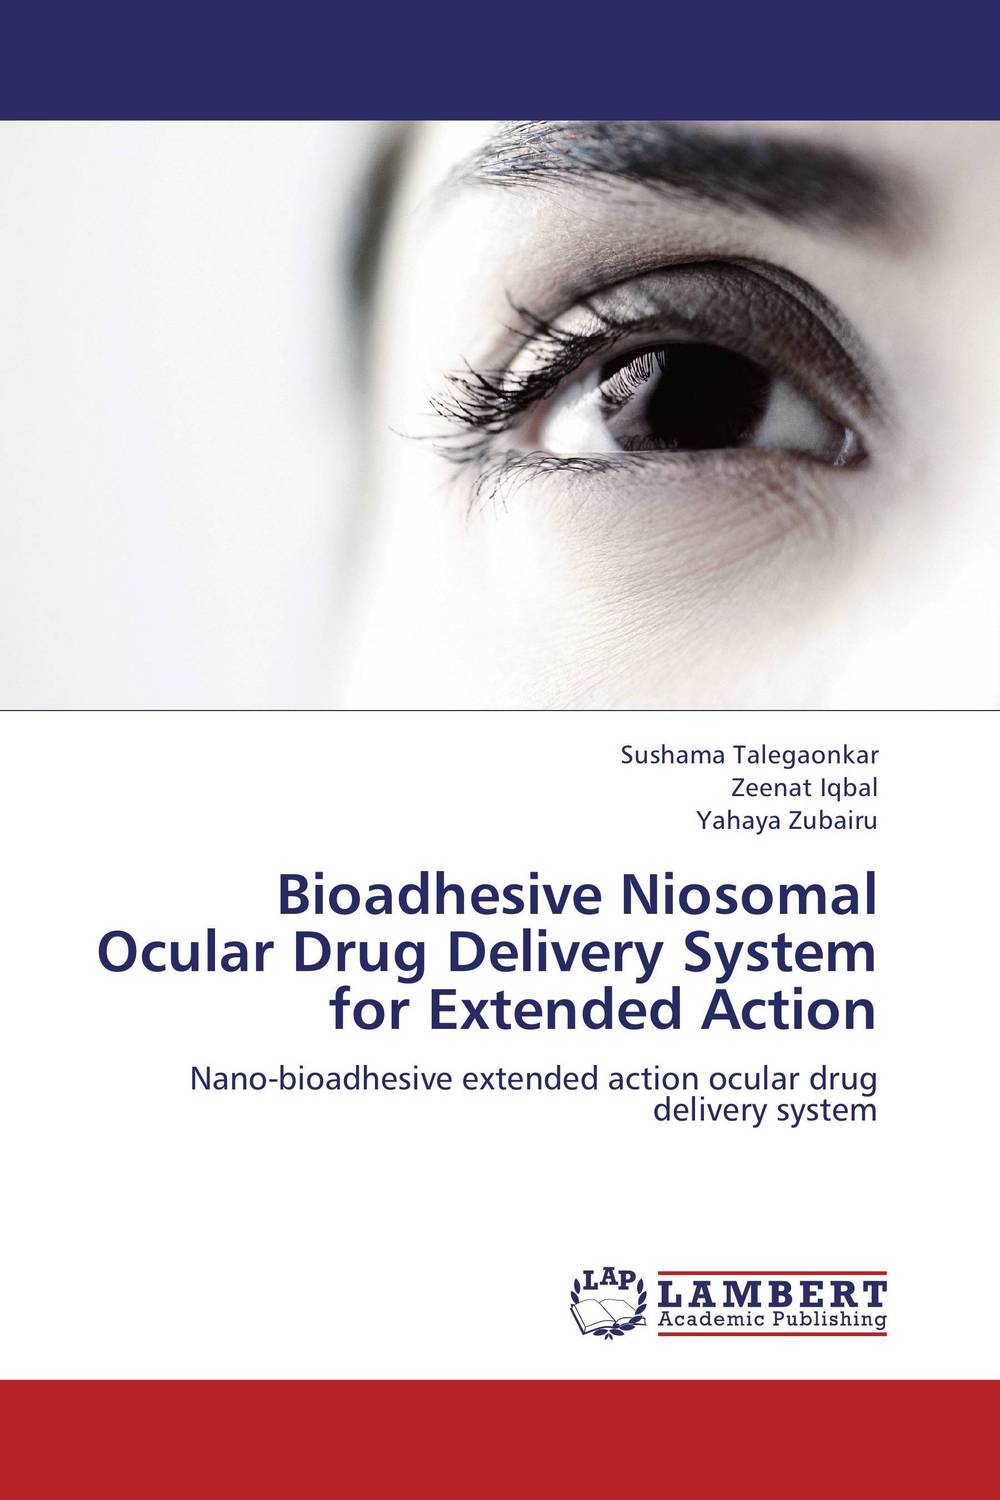 Bioadhesive Niosomal Ocular Drug Delivery System for Extended Action abhishek kumar sah sunil k jain and manmohan singh jangdey a recent approaches in topical drug delivery system